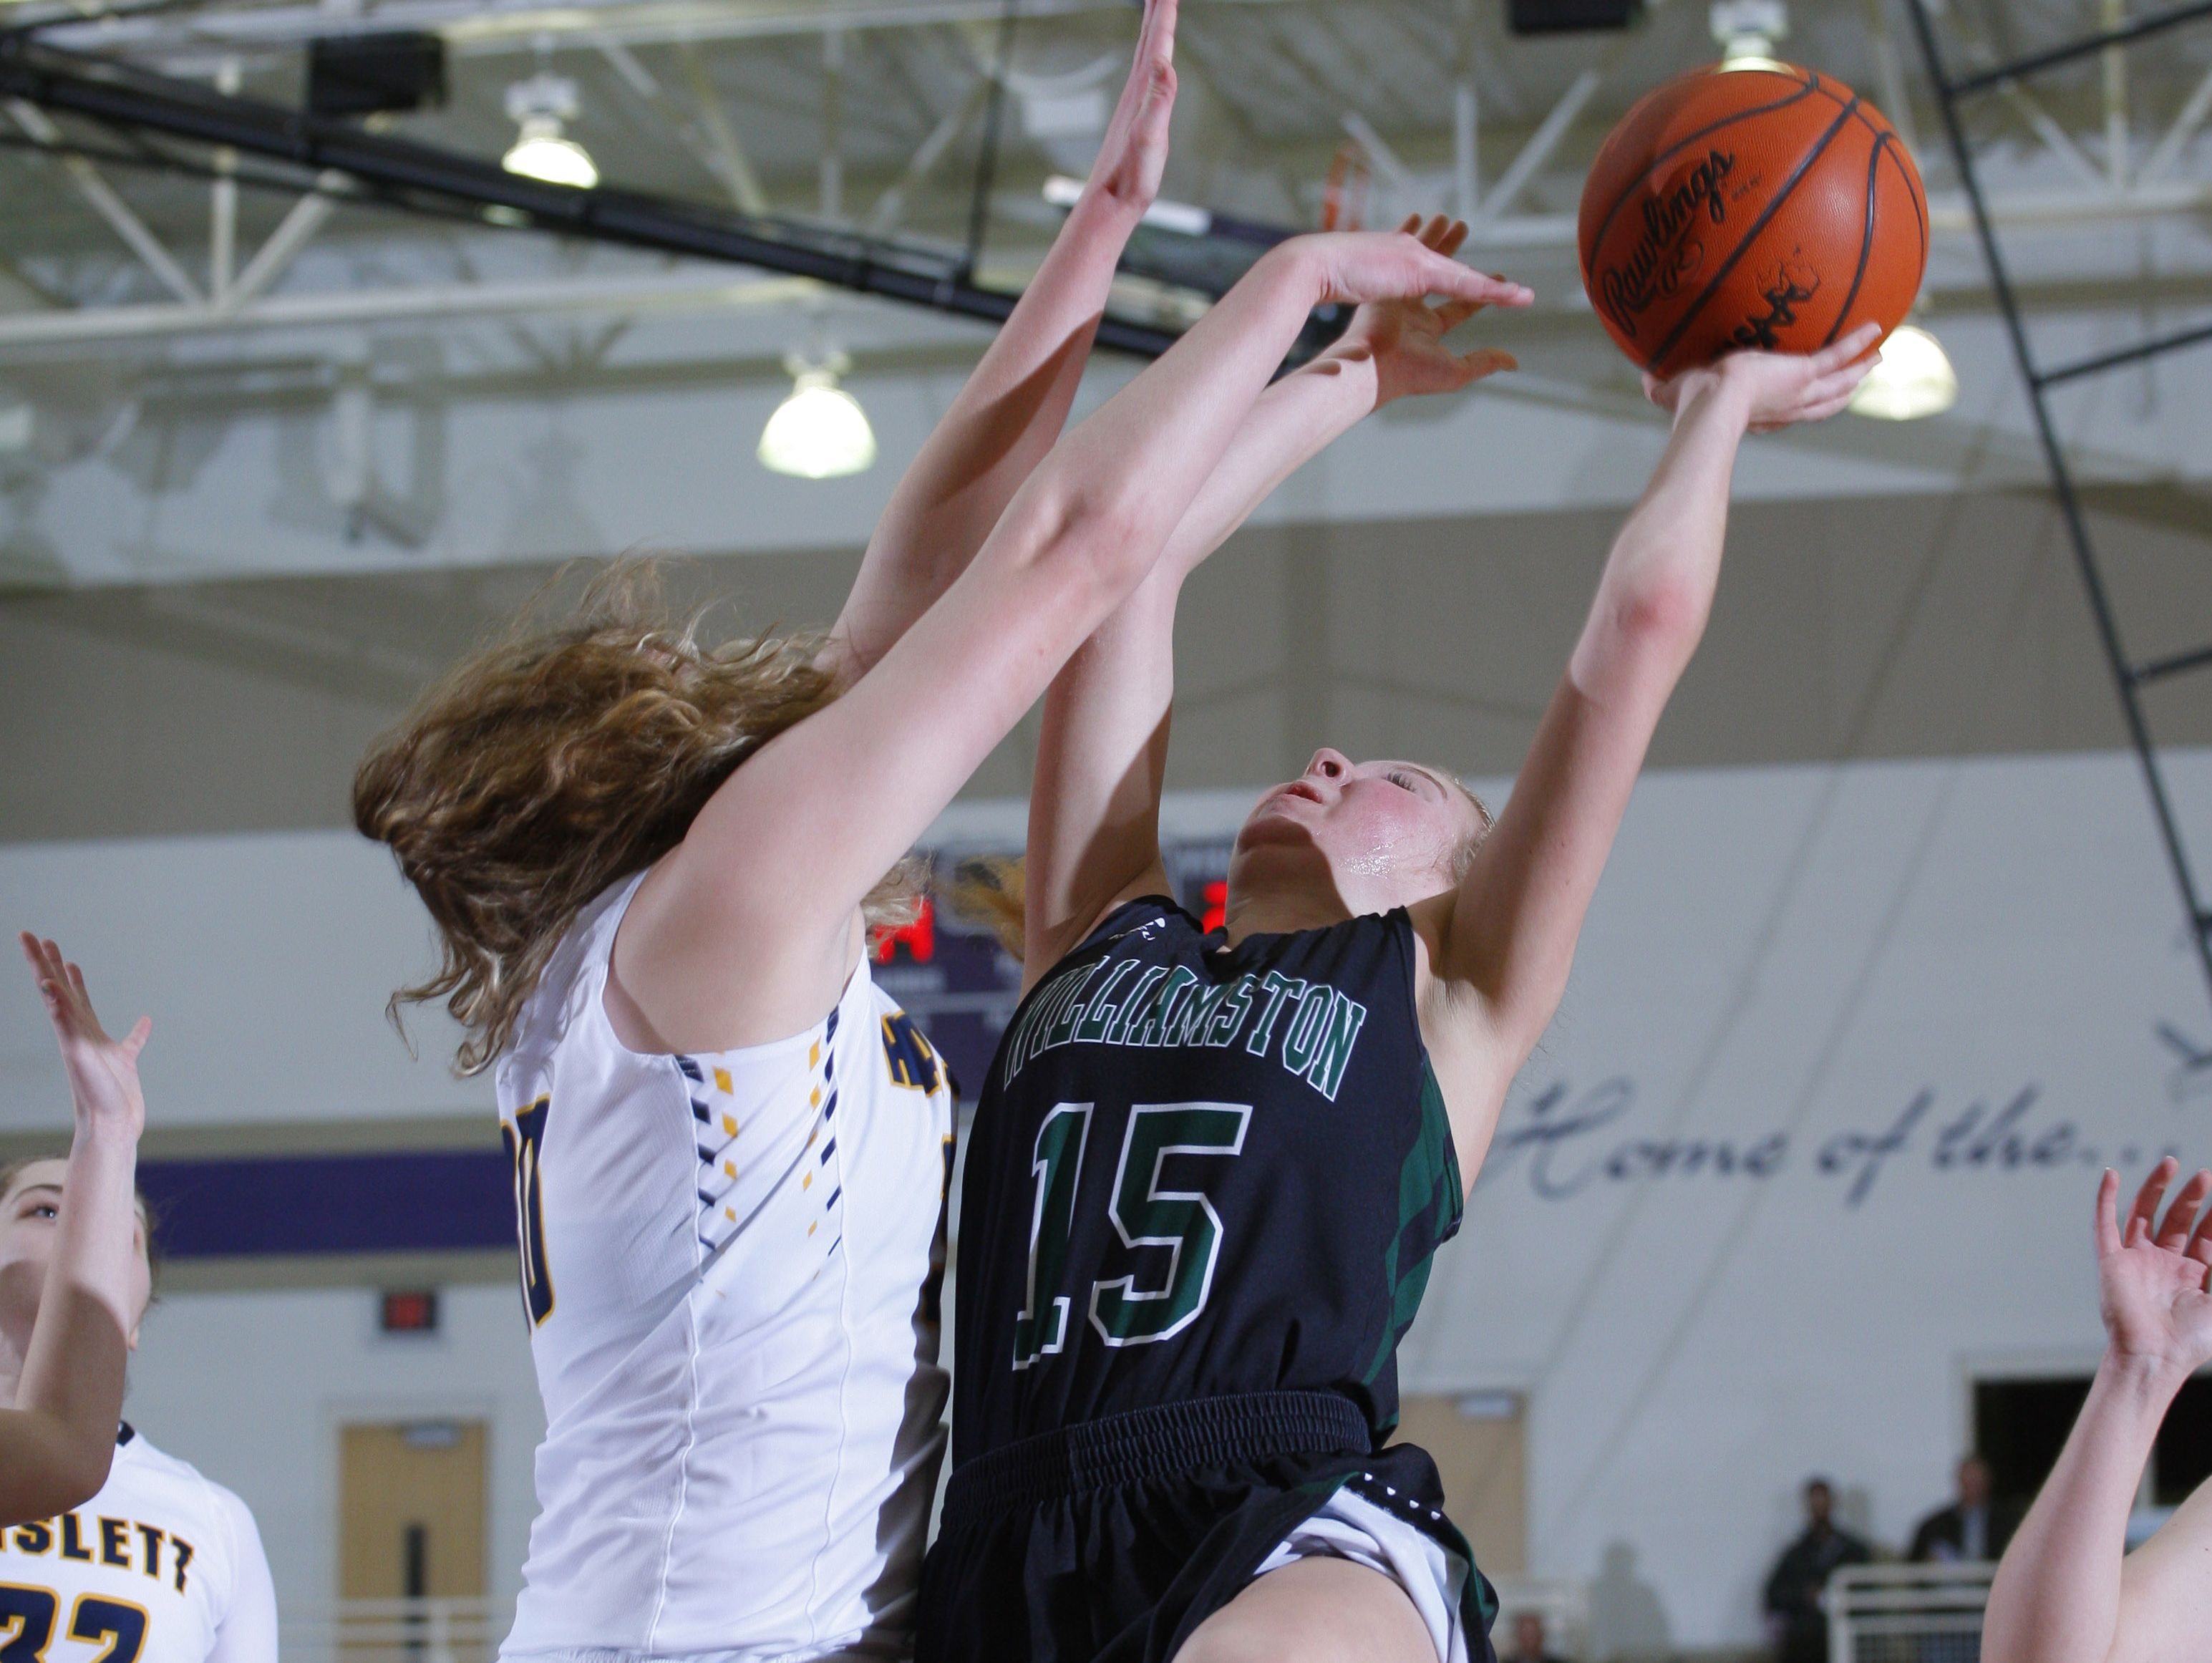 Williamston's Elana Lycos, right, puts up a shot against Haslett's Sydnee Dennis during their district semifinal game Wednesday, March 1, 2017, in Fowlerville, Mich. Williamston won 53-42.